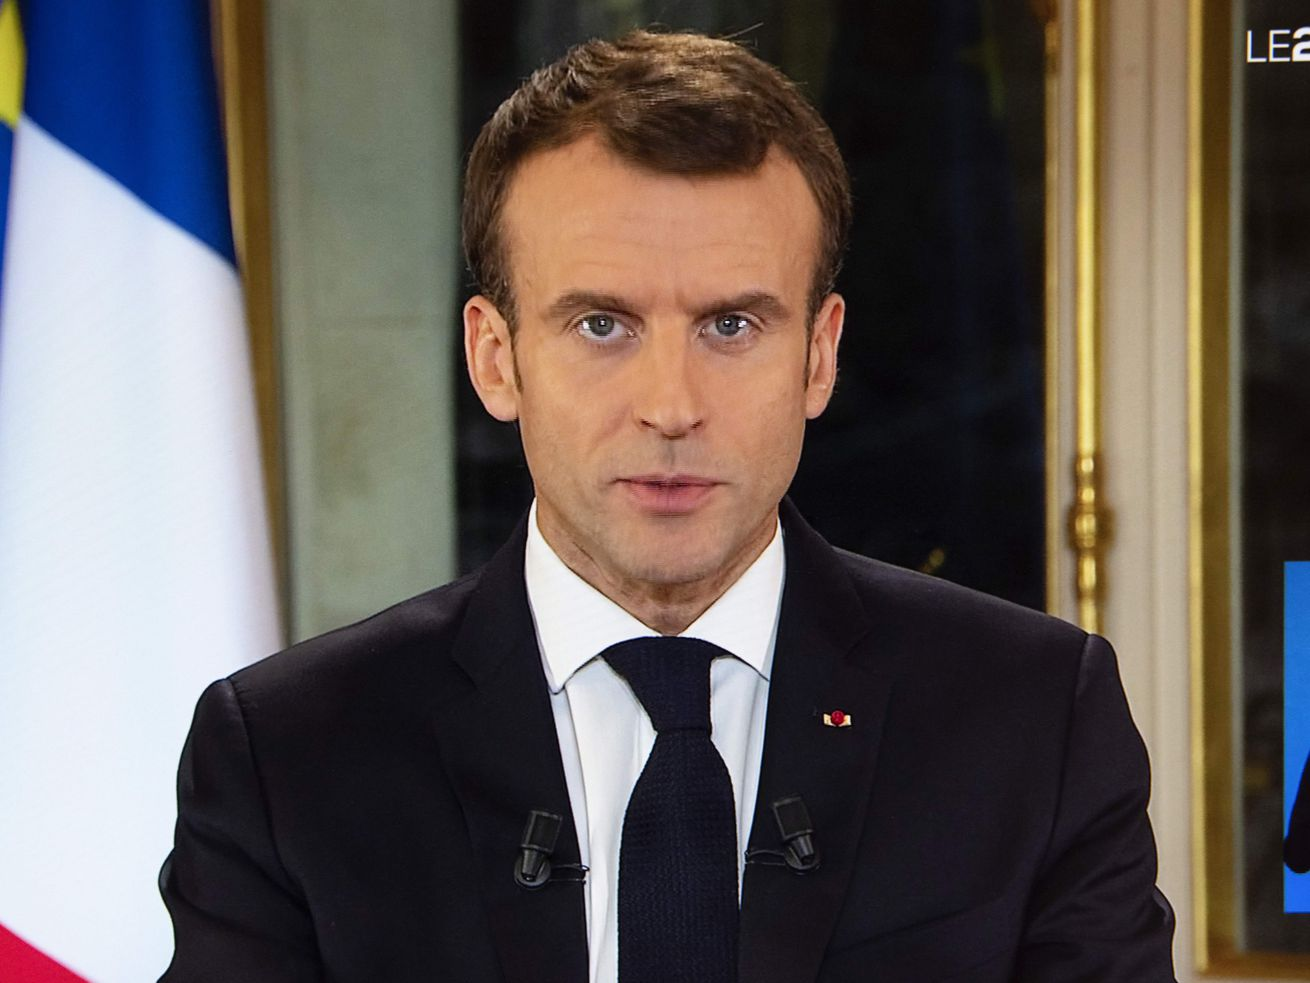 French President Emmanuel Macron's special address to the nation, his first public comments after four weeks of nationwide protests, at the Elysée Palace in Paris.